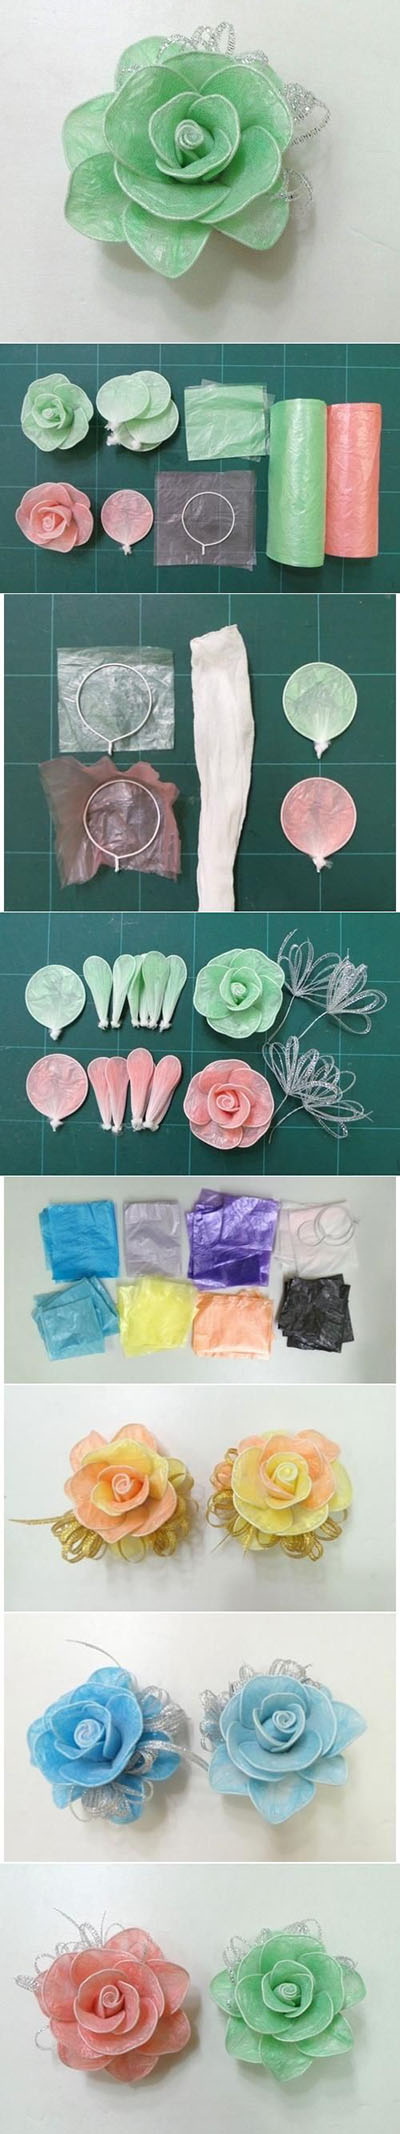 11   DIY Hair Roses Made from Colored plastic and Twist Ties a6331a6e